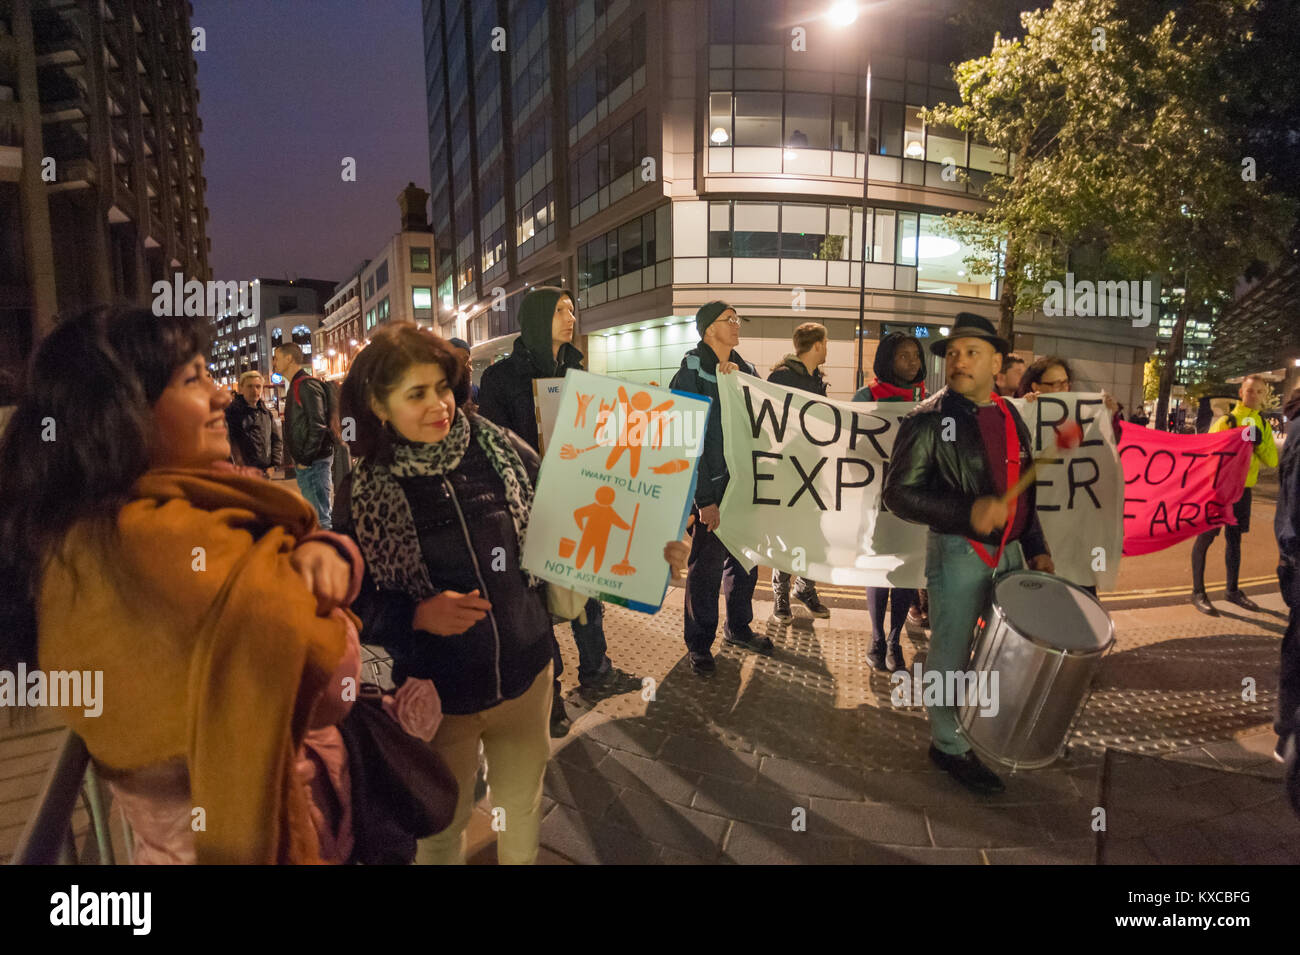 United Voices of the World protesters  outside the Barbican Centre calling for talks with employer Mitie and Barbican - Stock Image